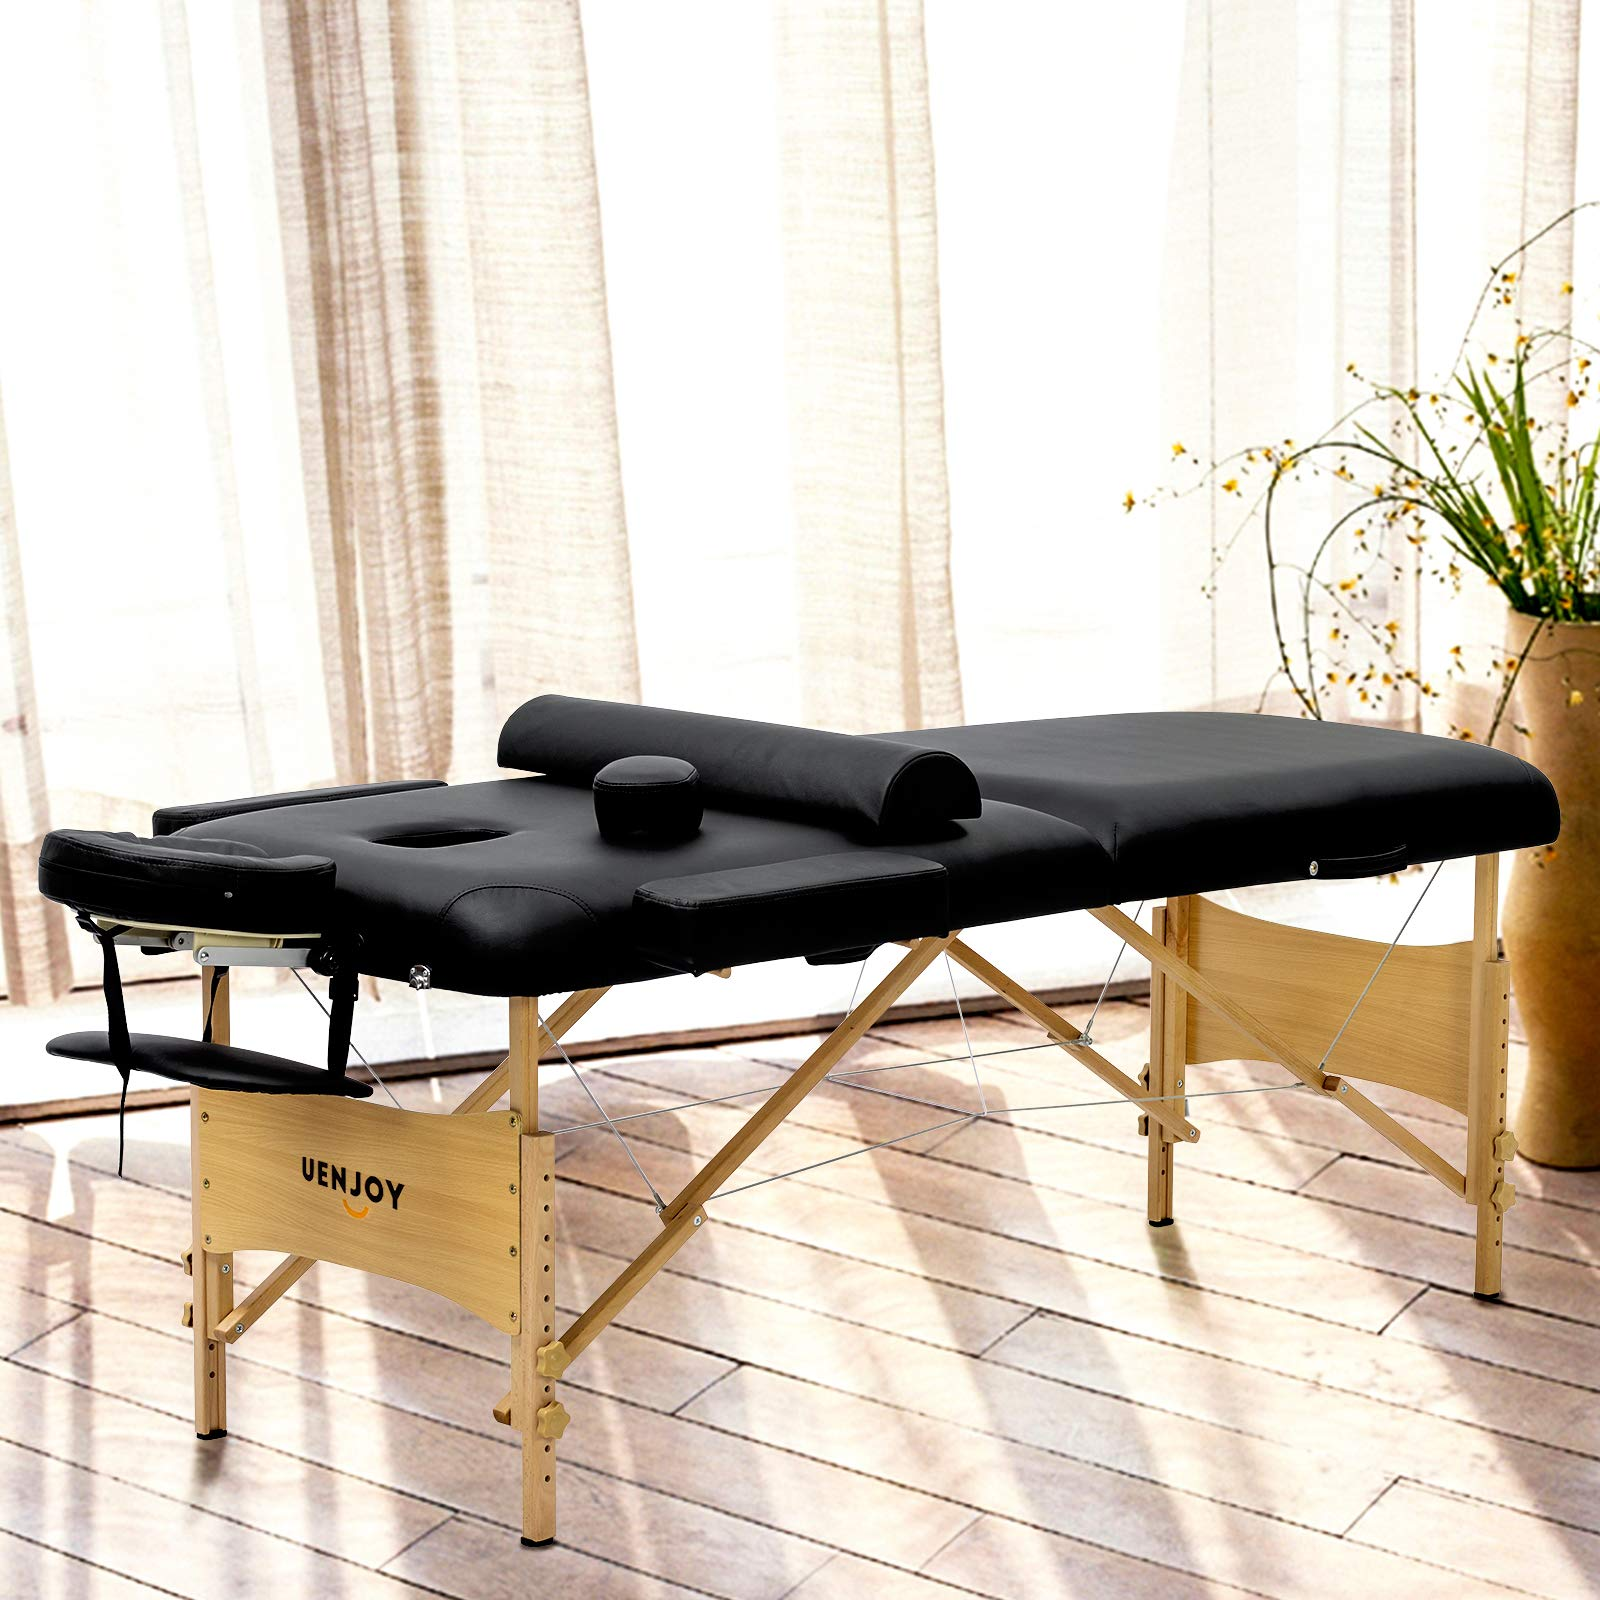 Uenjoy Massage Table 84'' Professional Folding Massage Bed Deluxe Model with Extra Width, Ultra-thick Sponge, PU Leather Surface & Additional Accessories, 2 Fold, Black by Uenjoy (Image #3)